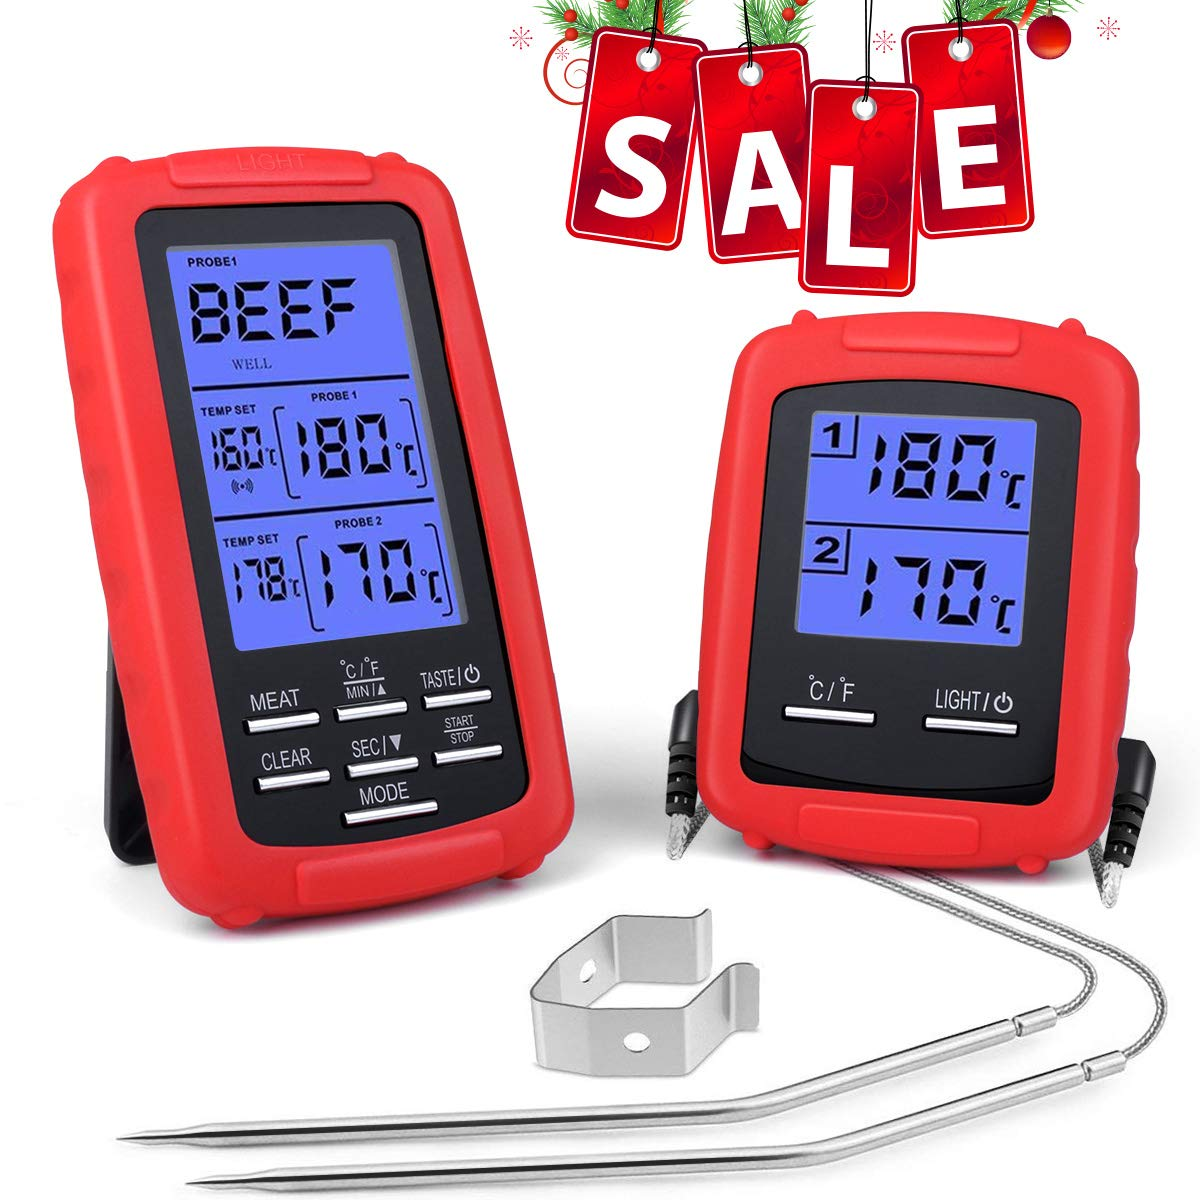 Pansonite Wireless Remote Digital Cooking Food Thermometer Meat Thermometer for Grilling Oven Kitchen Smoker BBQ Grill Thermometer with Dual Probe, 230 Feet Range by Pansonite